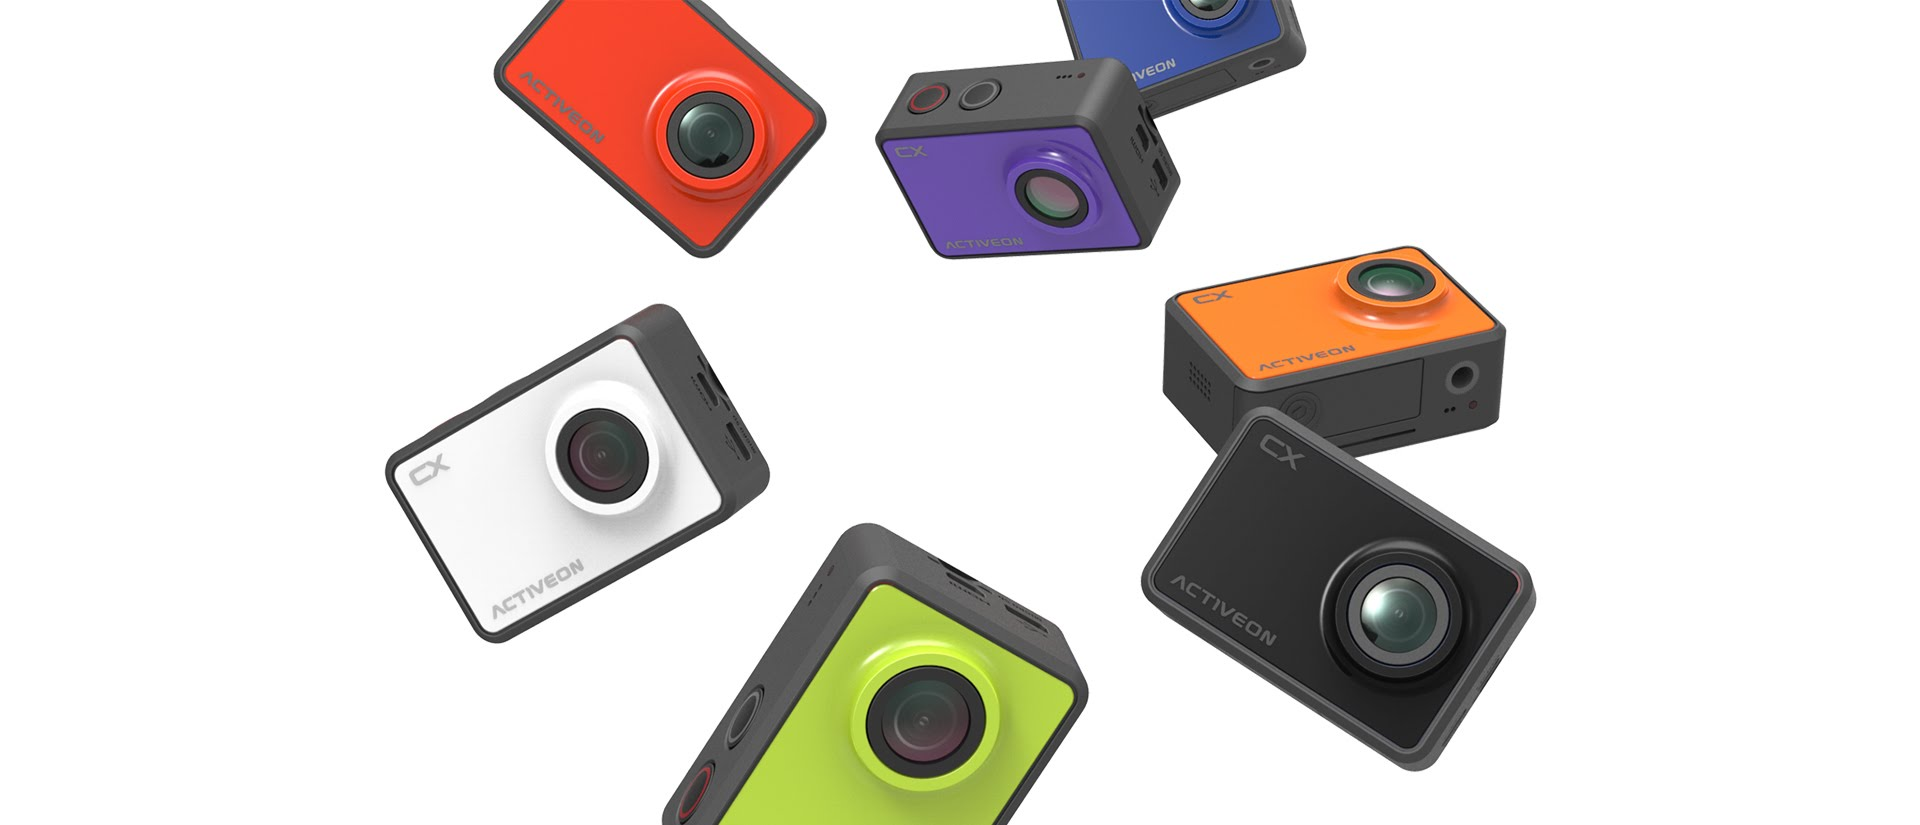 Activeon Cx Packs A Lot Of Rugged Value Into A Tiny Camera